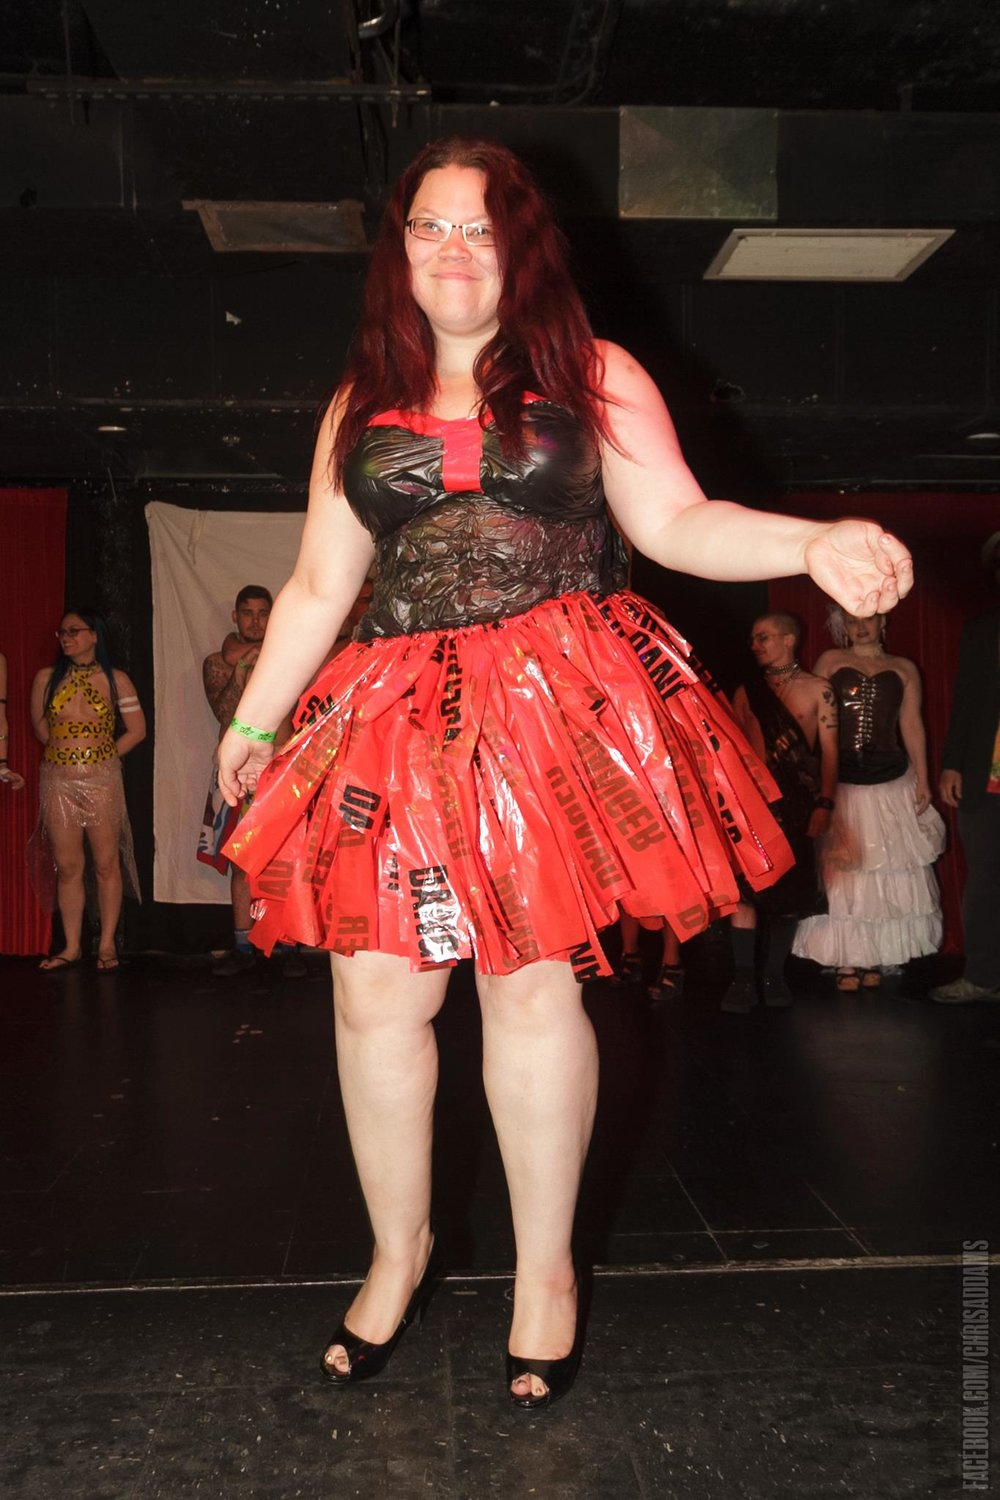 TheHavenClub-Goth-Industrial-Dance-Alternative-Northampton-MA (23).jpg